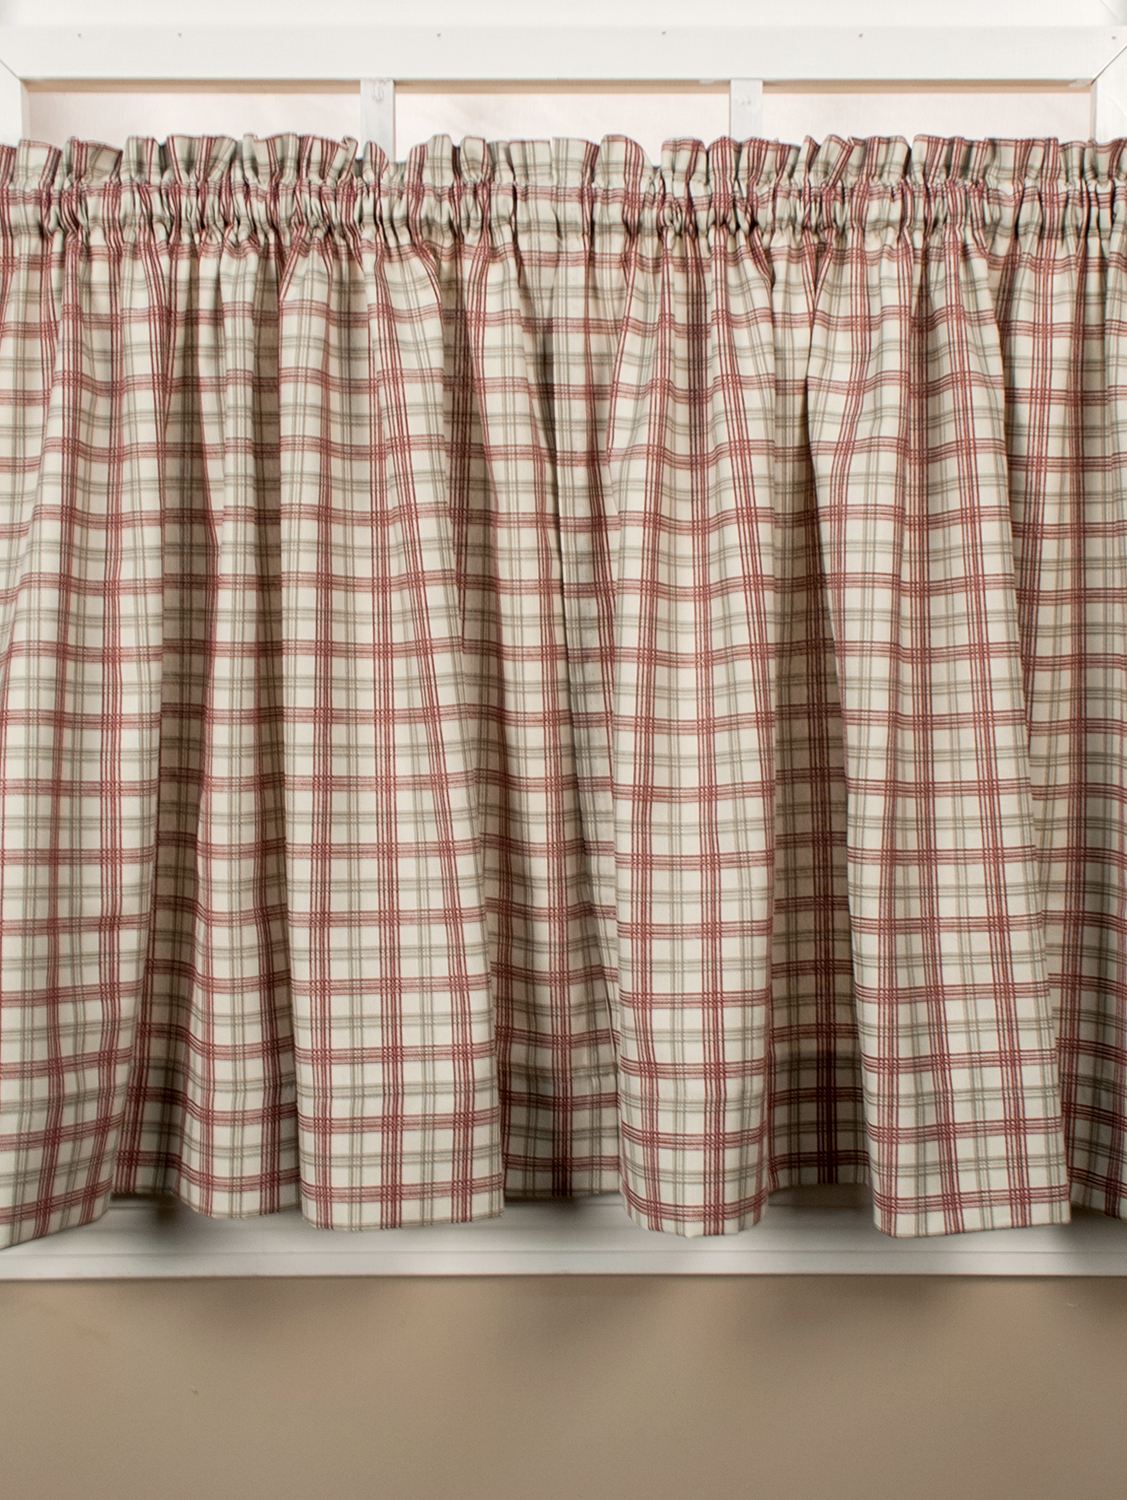 Rustic Bedding & Rugs Pertaining To Most Recent Pleated Curtain Tiers (Gallery 16 of 20)